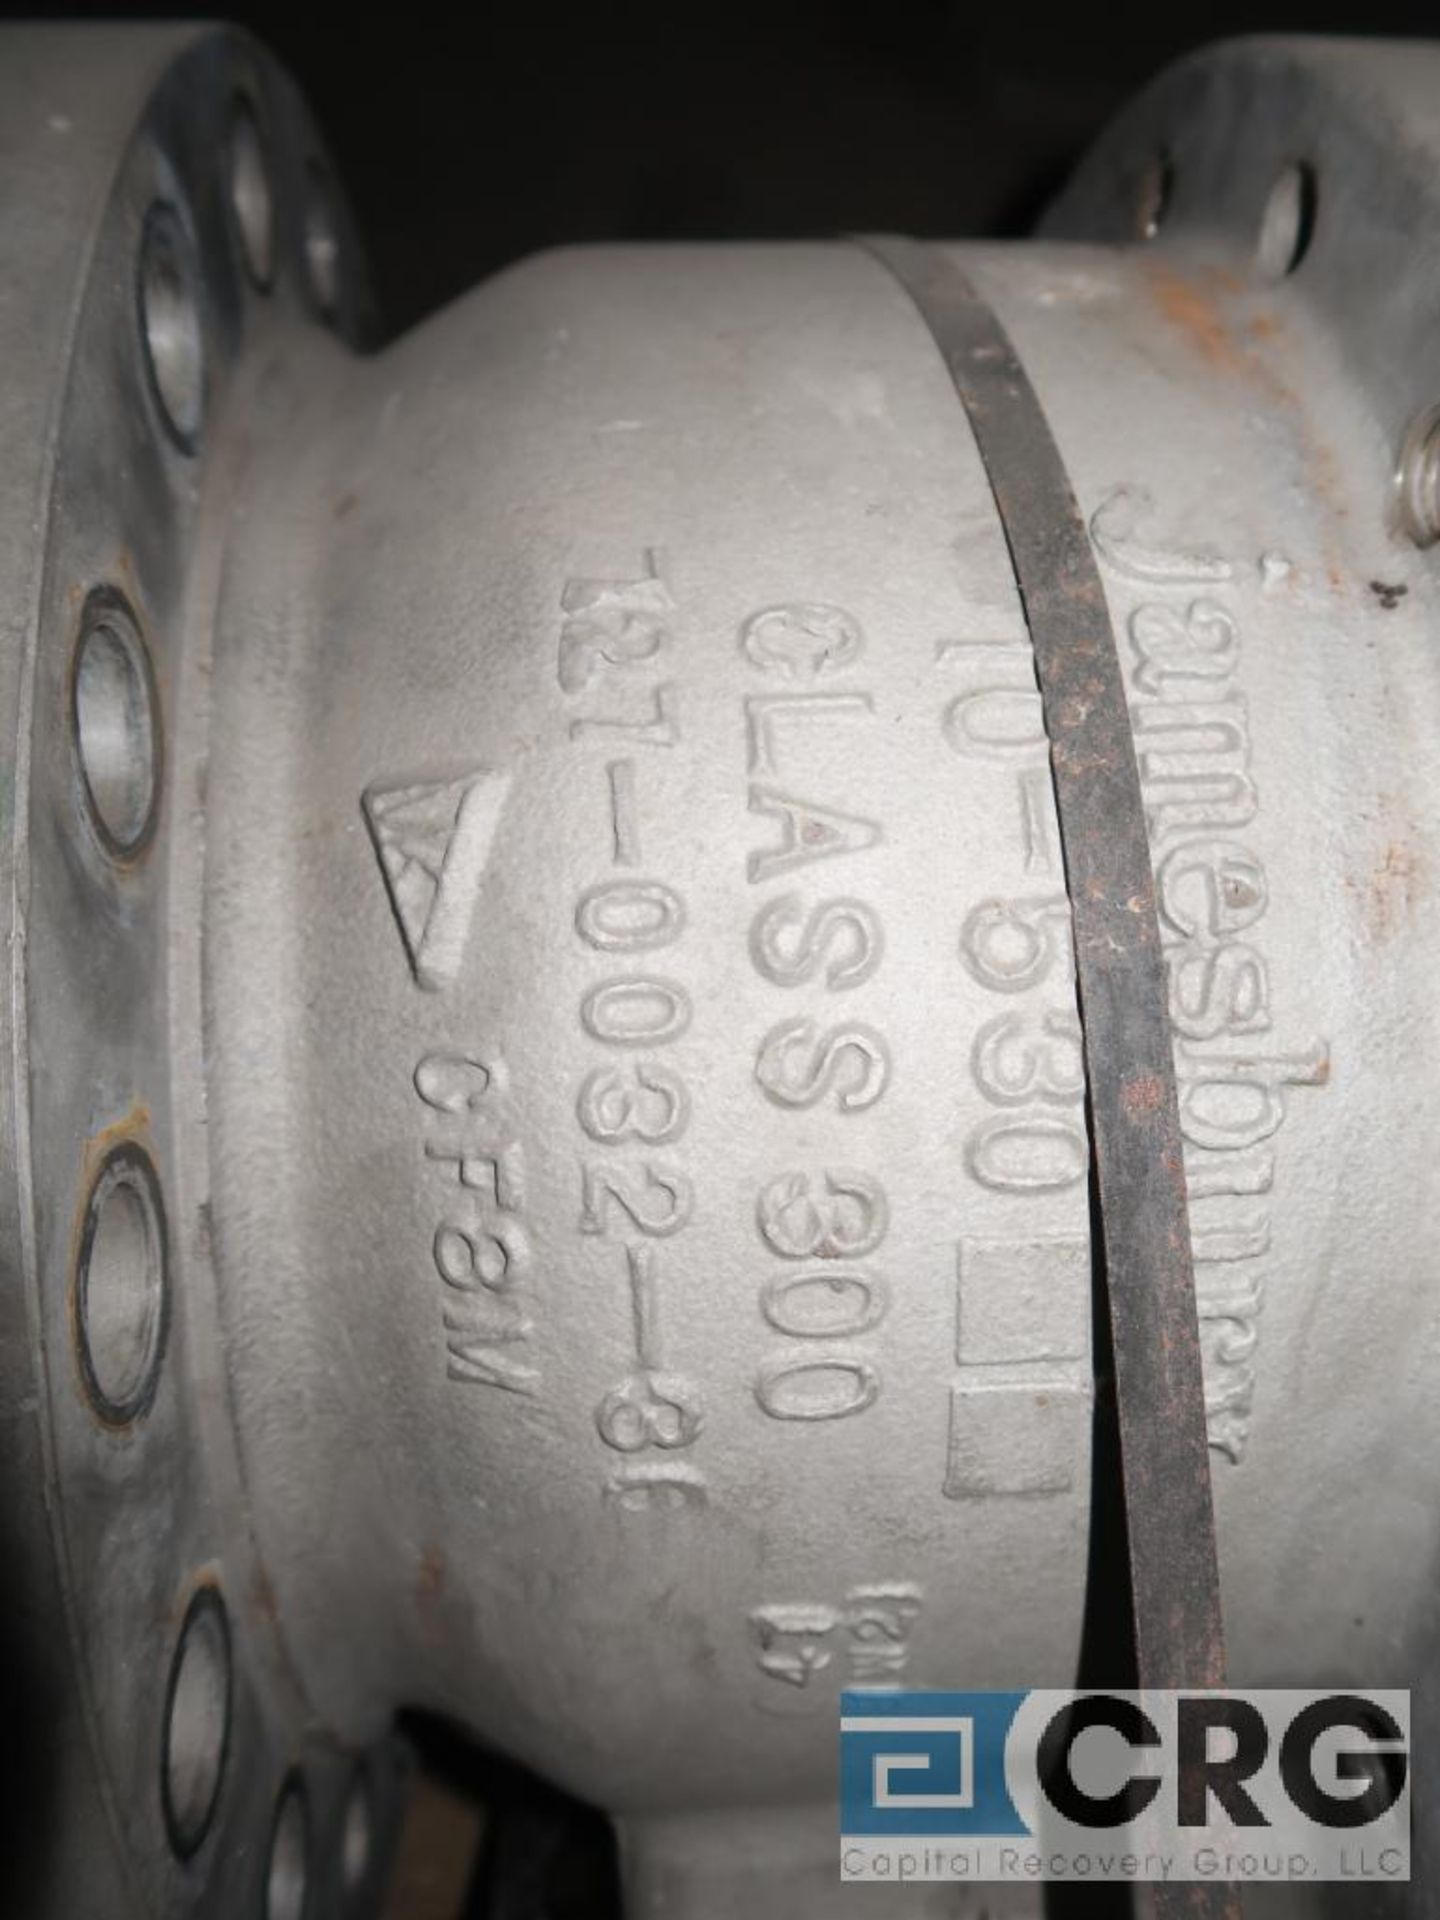 Jamesbury 10 in. stainless pneumatic ball valve, 300 psi (Off Site Warehouse) - Image 2 of 2